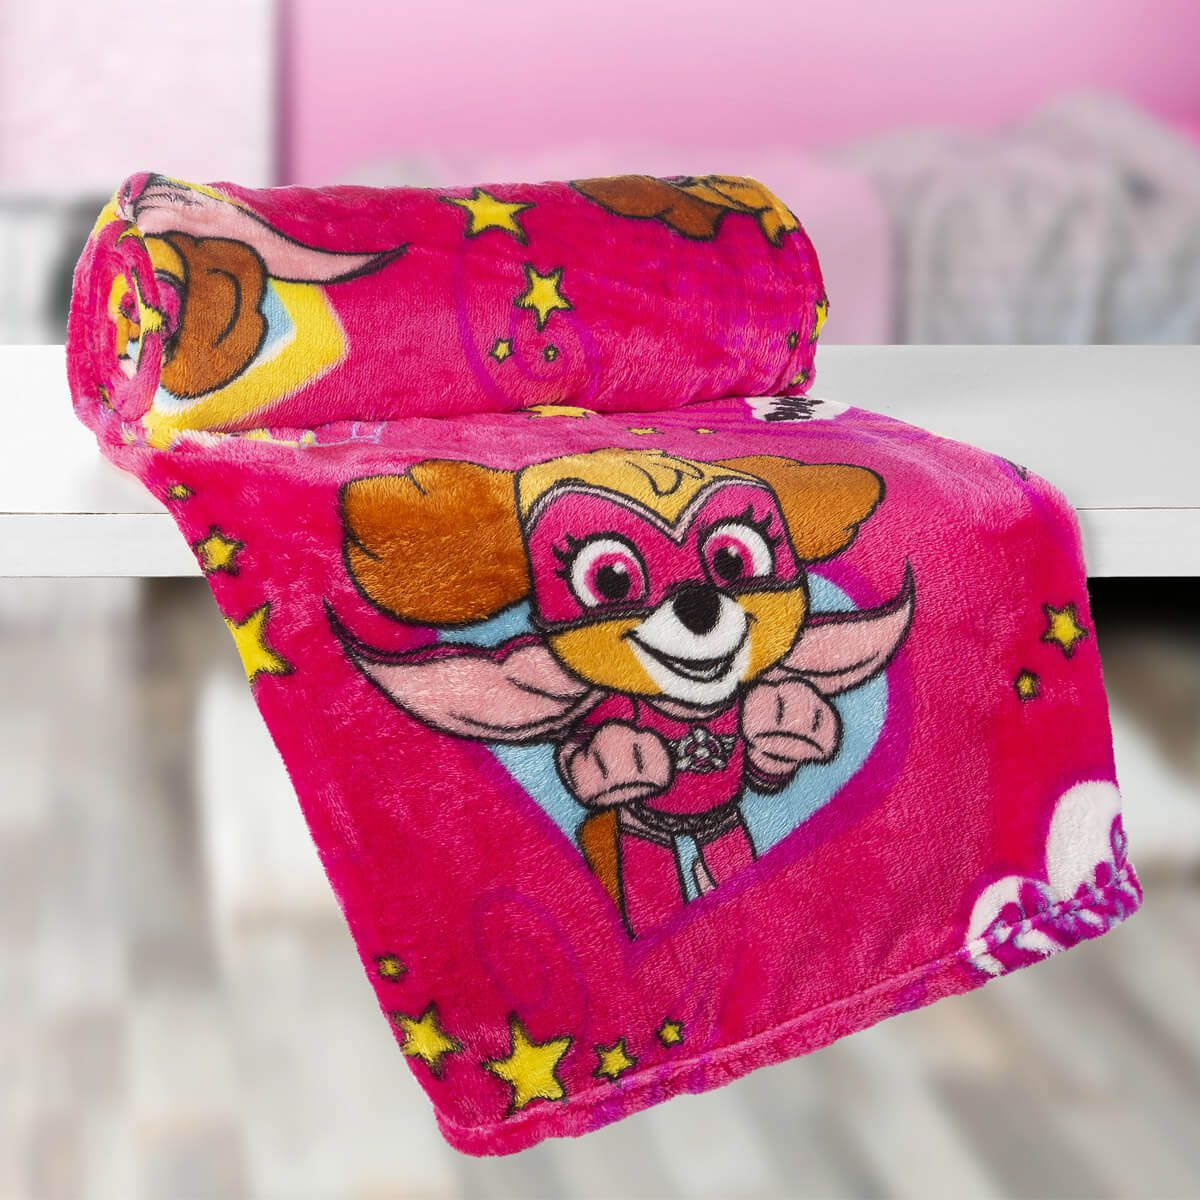 Manta Infantil Patrulha Canina Rosa Super Soft Fleece Lepper